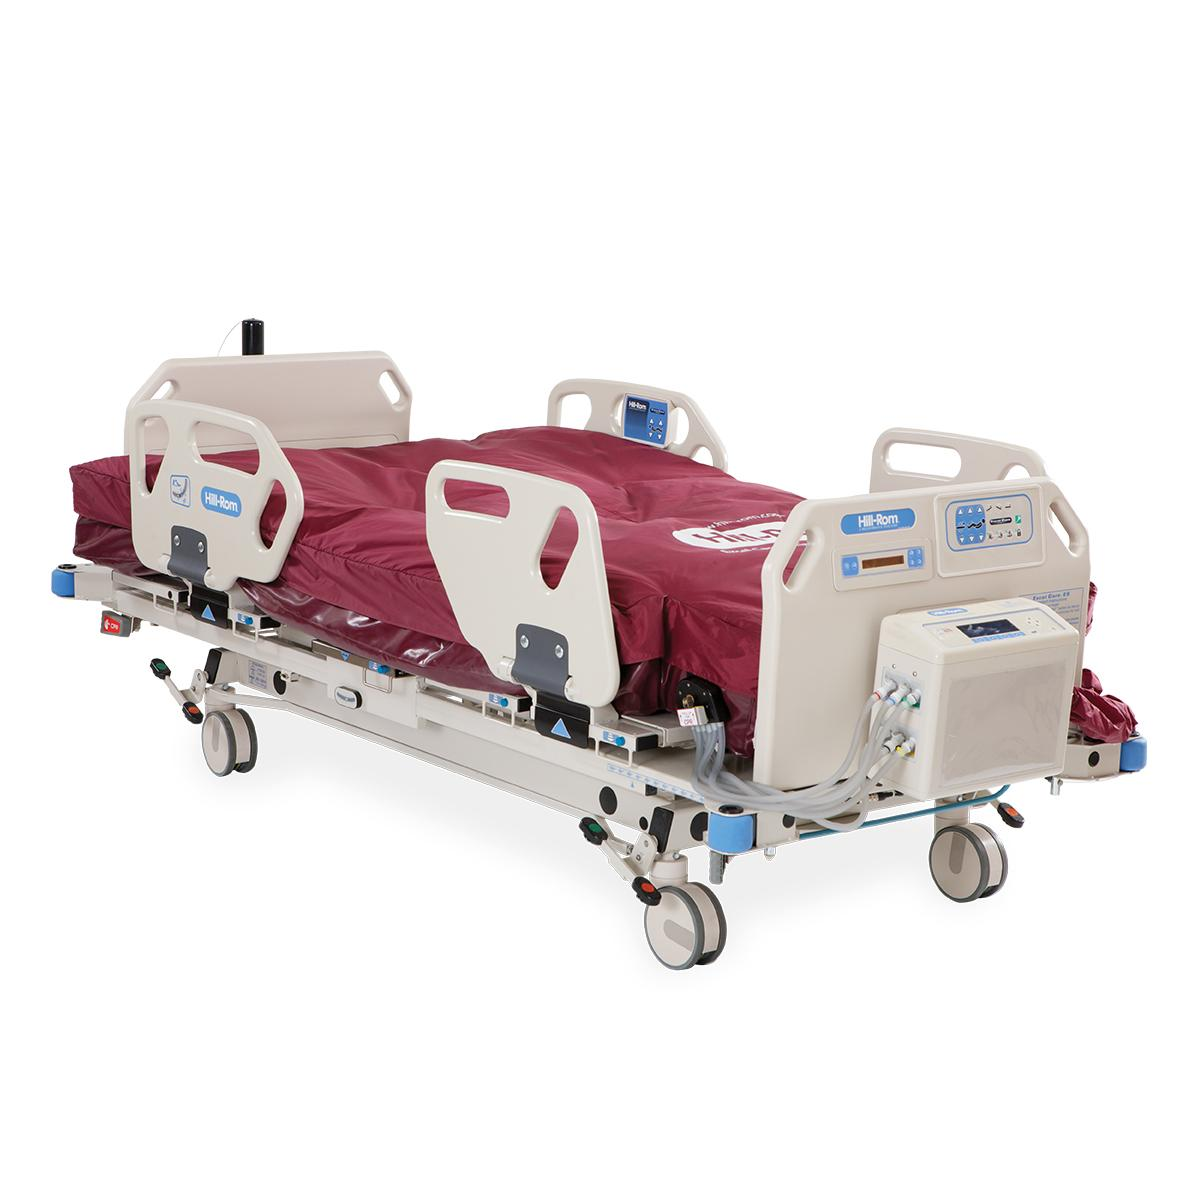 Excel Care ES Bariatric Hospital Bed, 3/4 view, surface lying flat